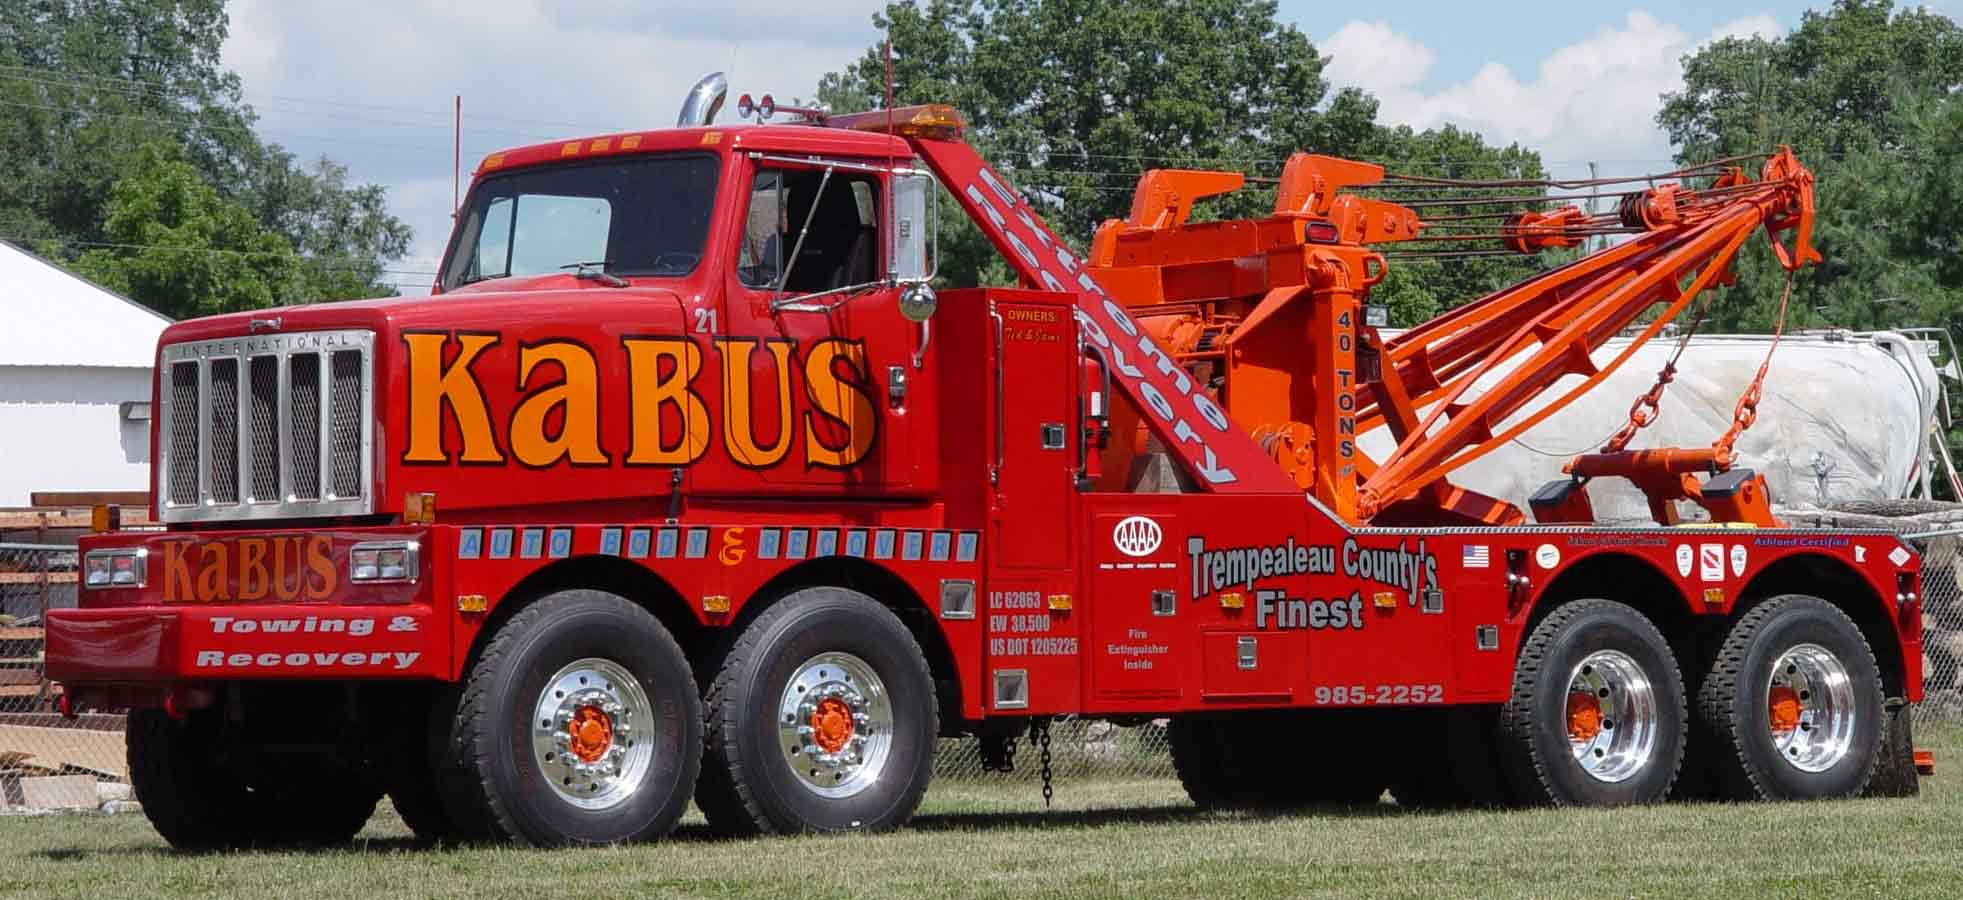 Kabus tow truck